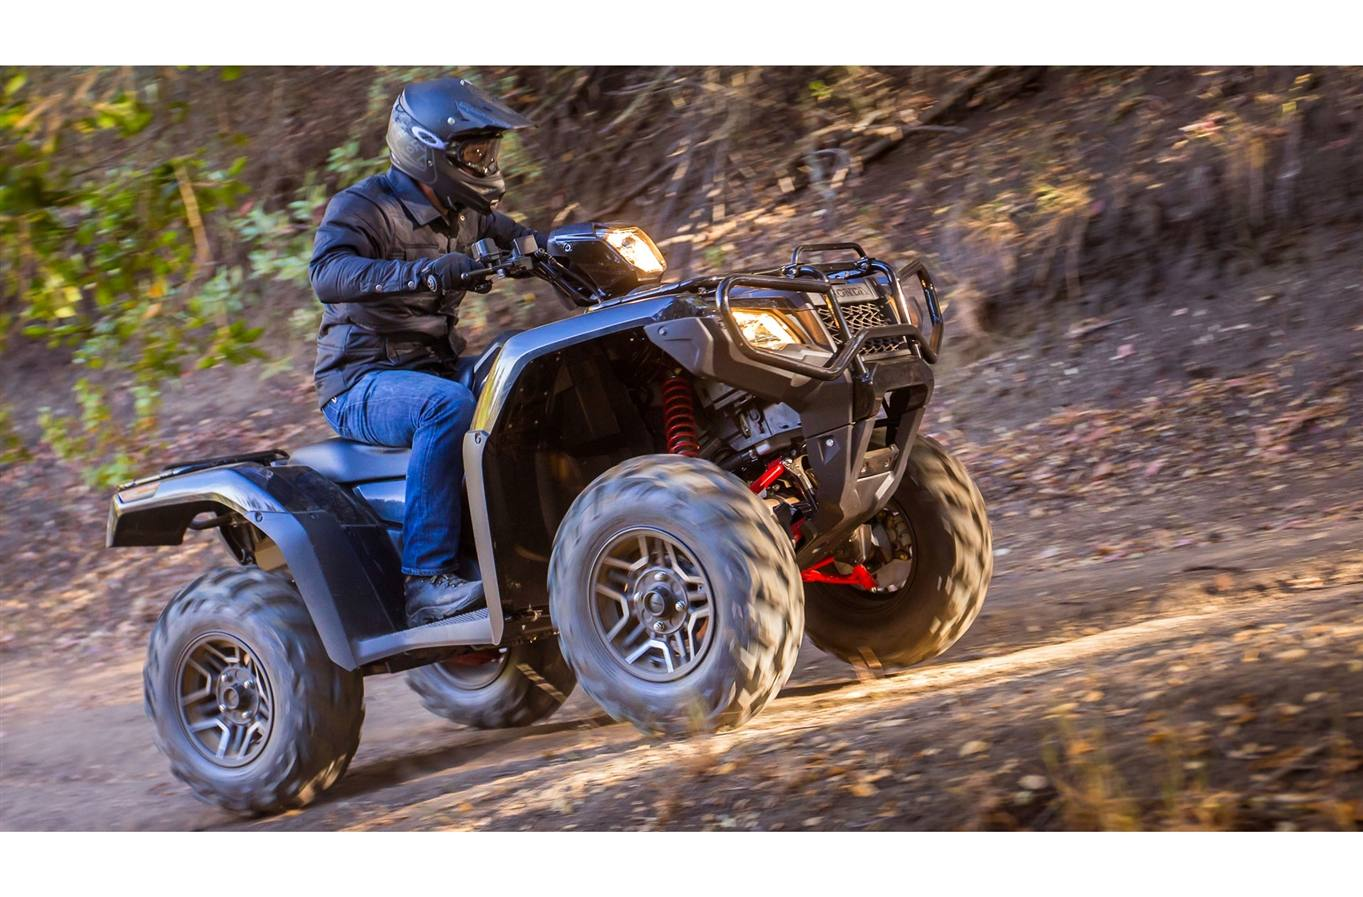 2019 Honda Rubicon 500 Dct Deluxe For Sale In Kelowna Bc Fuel Filter Gray Metallic